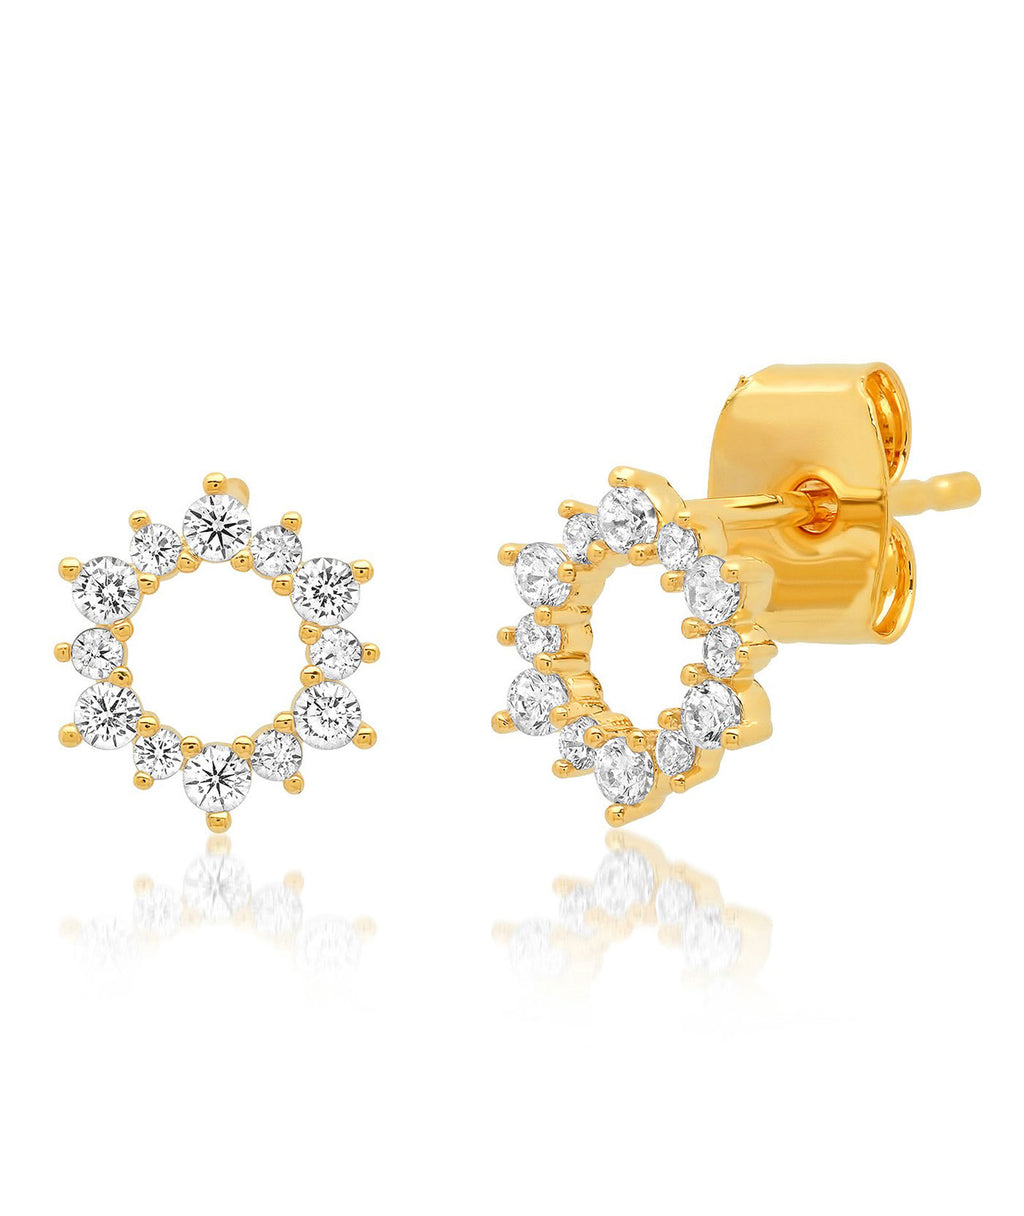 TAI Gold Pave Flower Stud Earrings